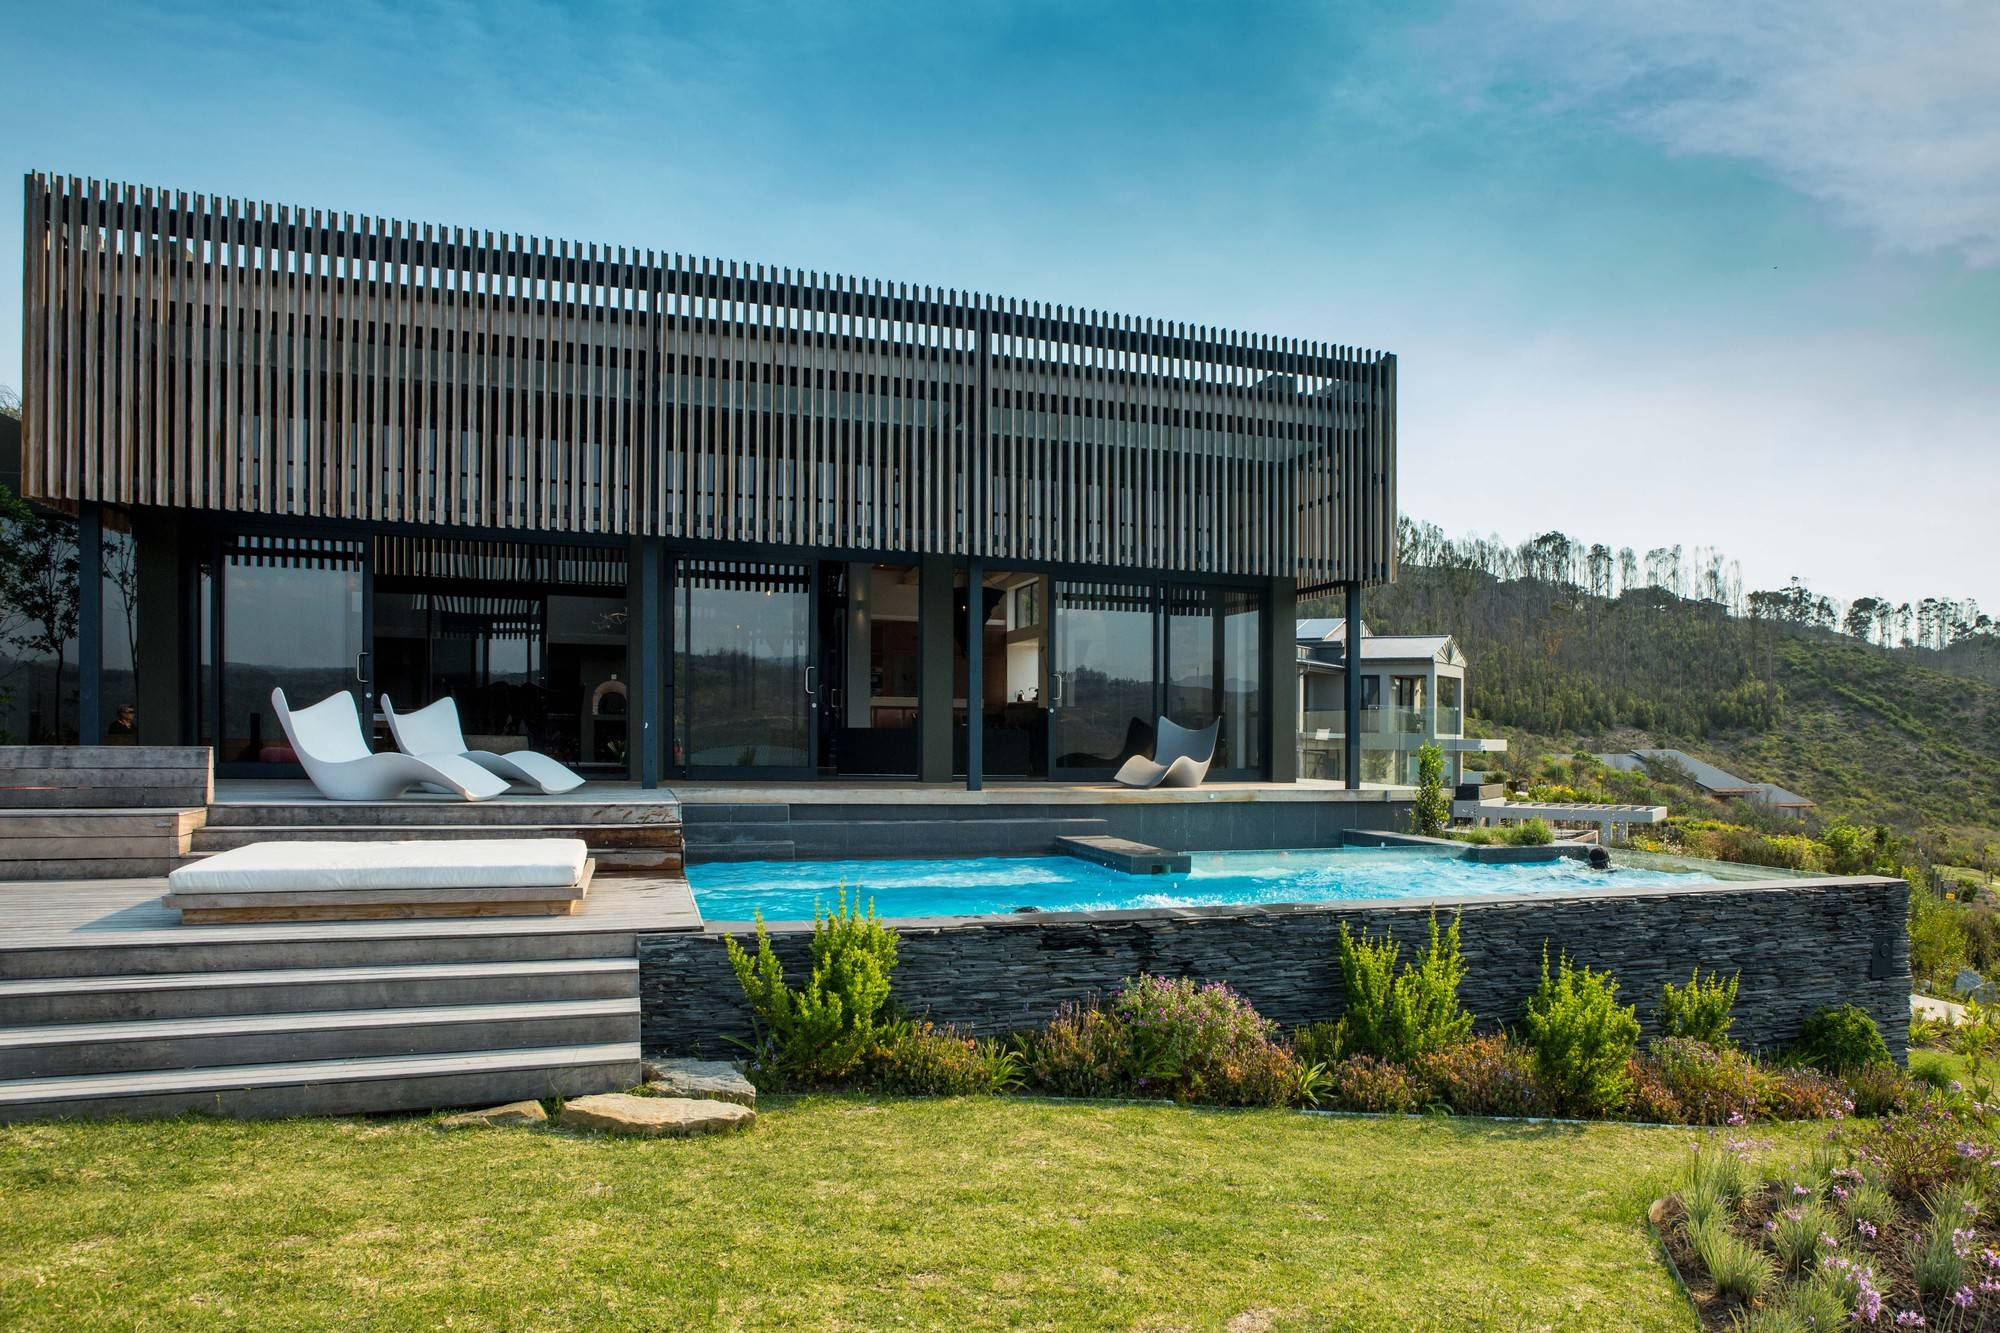 Outdoor pool area and hangout of the South African home with fabulous views of the outdoors